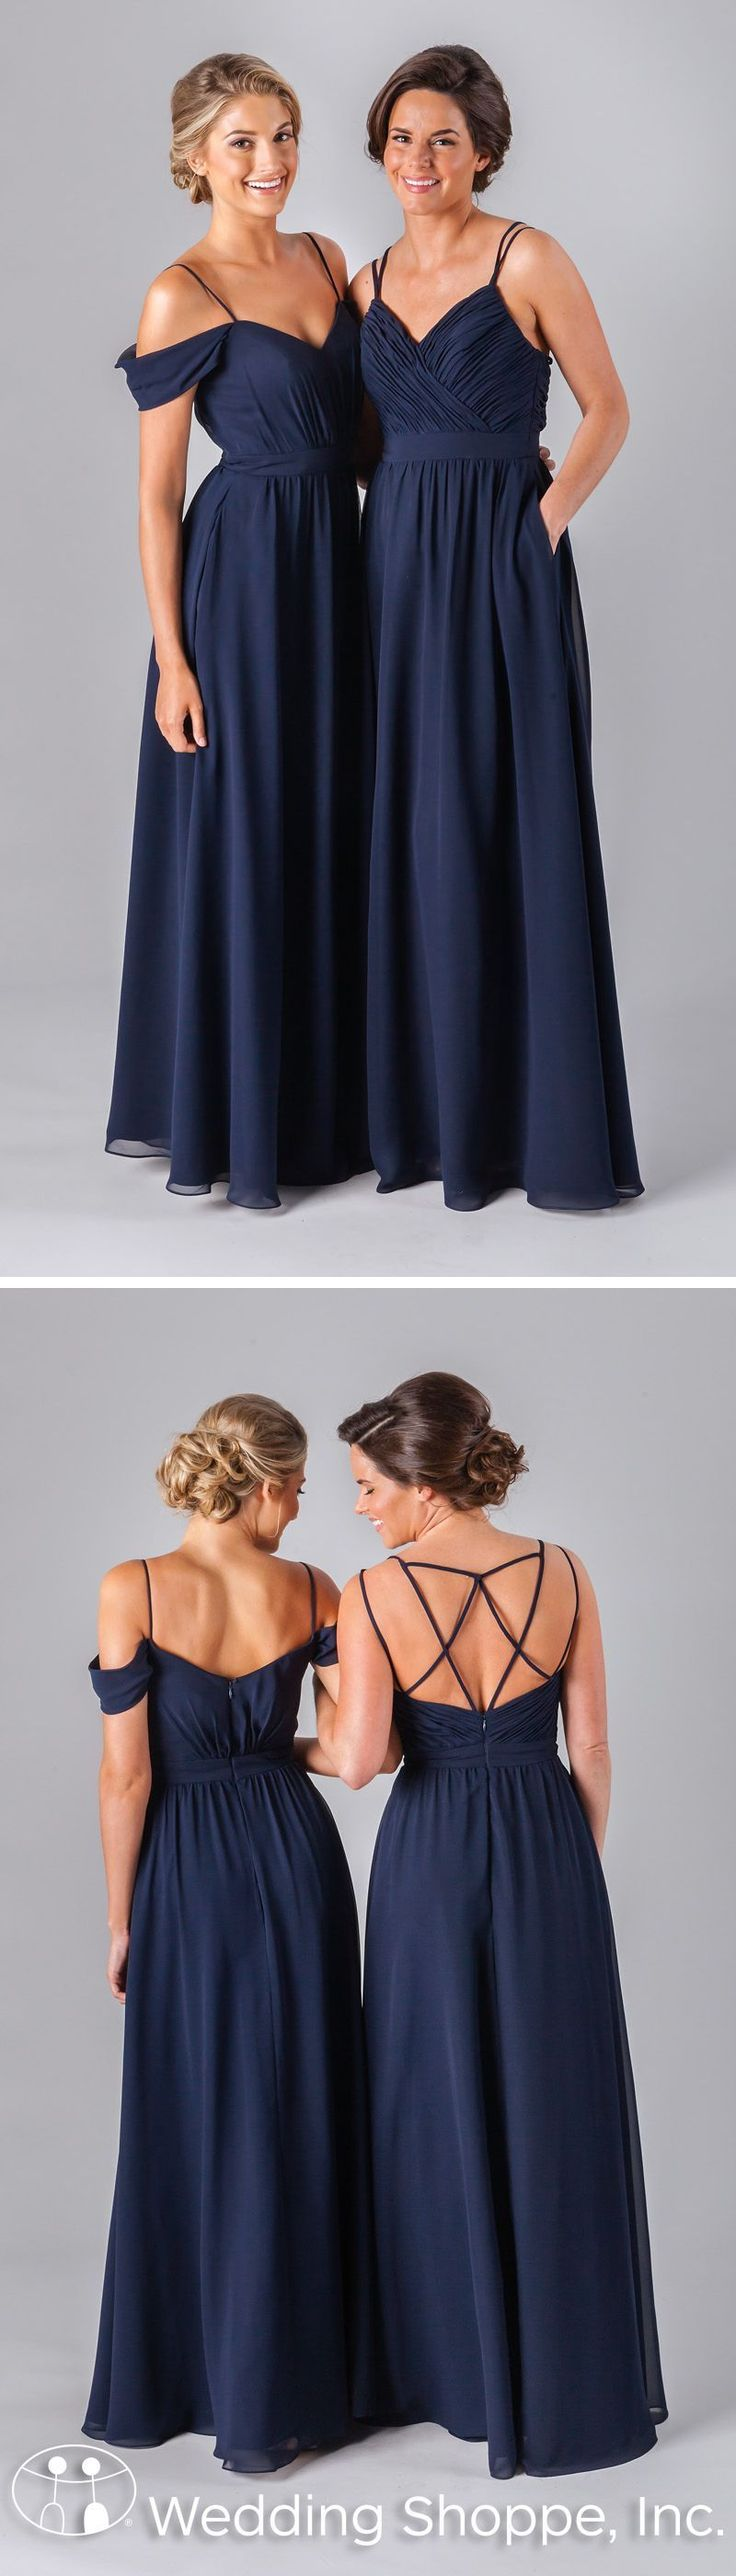 Long mismatched navy bridesmaid dresses with stunning details. #bridesmaiddresses